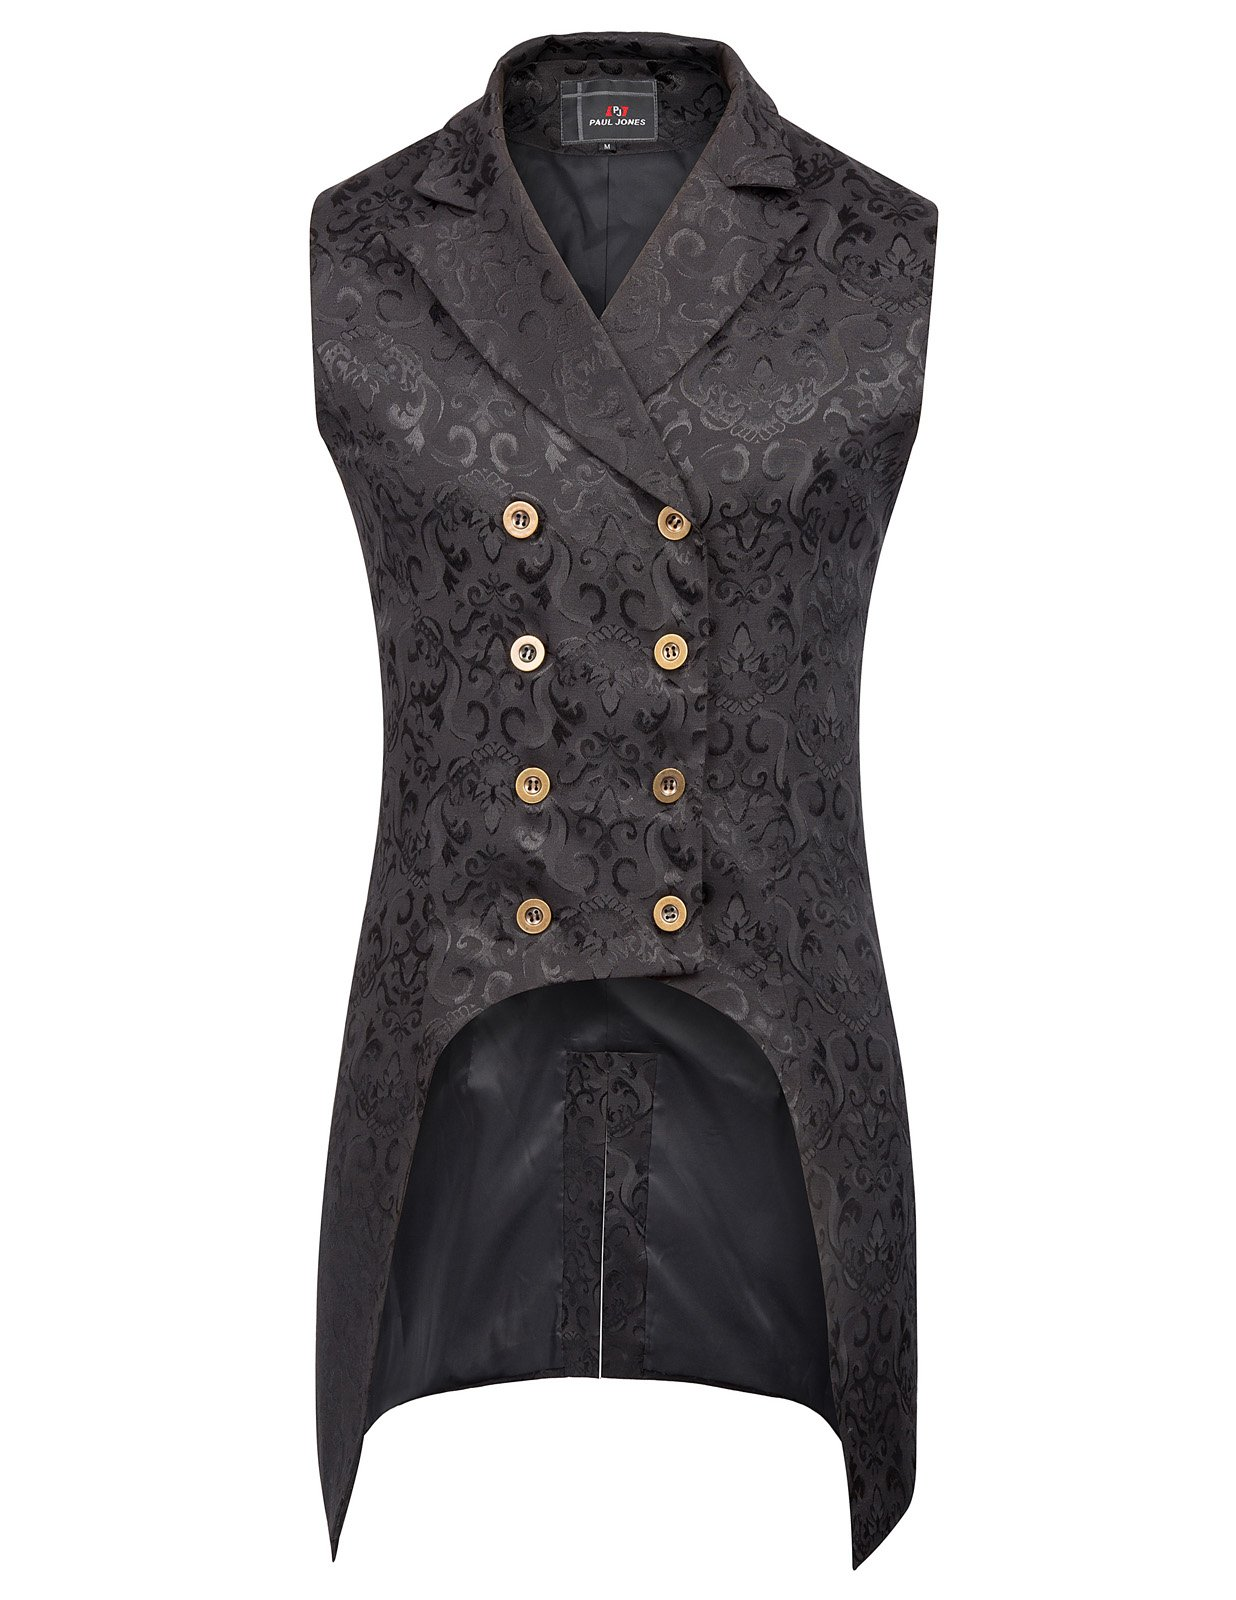 PAUL JONES Mens Gothic Steampunk Vest Waistcoat Black Velvet Jacquard Tailcoat PJ0081-1 S Black